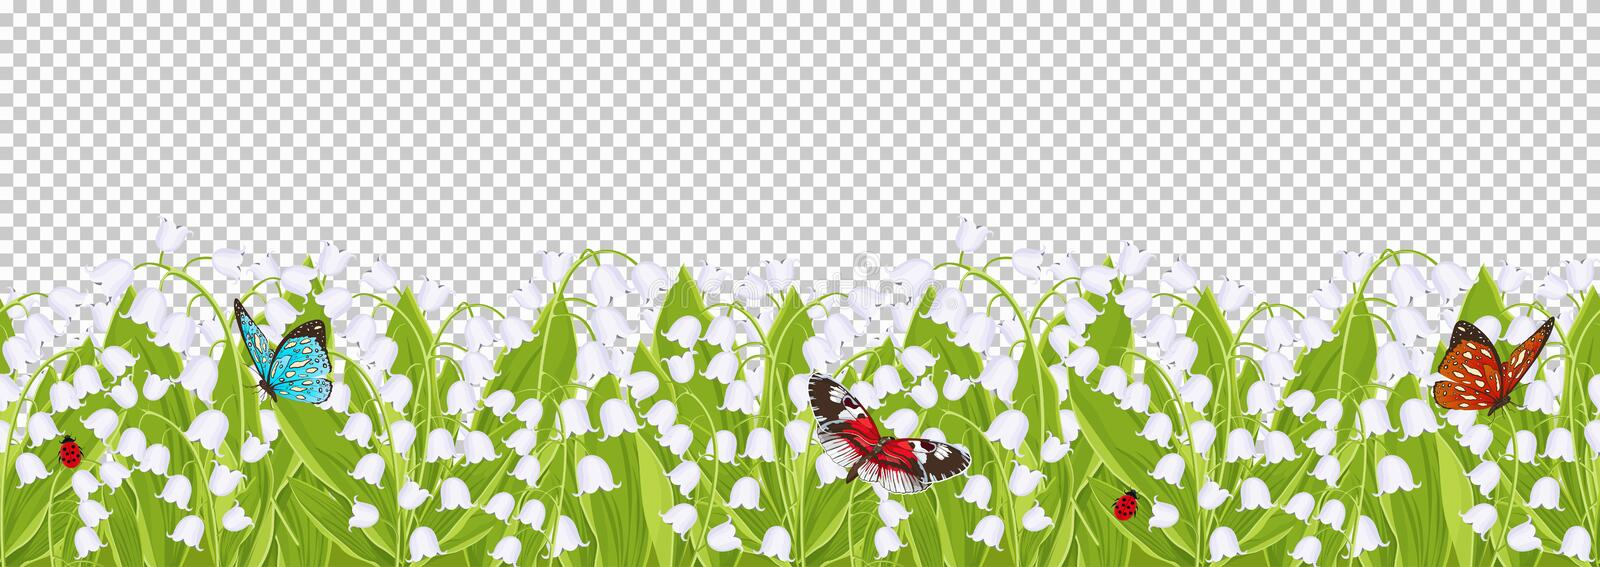 Seamless border with spring flowers lily of the valley, floral frame, vector illustration. White buds bluebell, green leaves with. Sitting butterflies and vector illustration